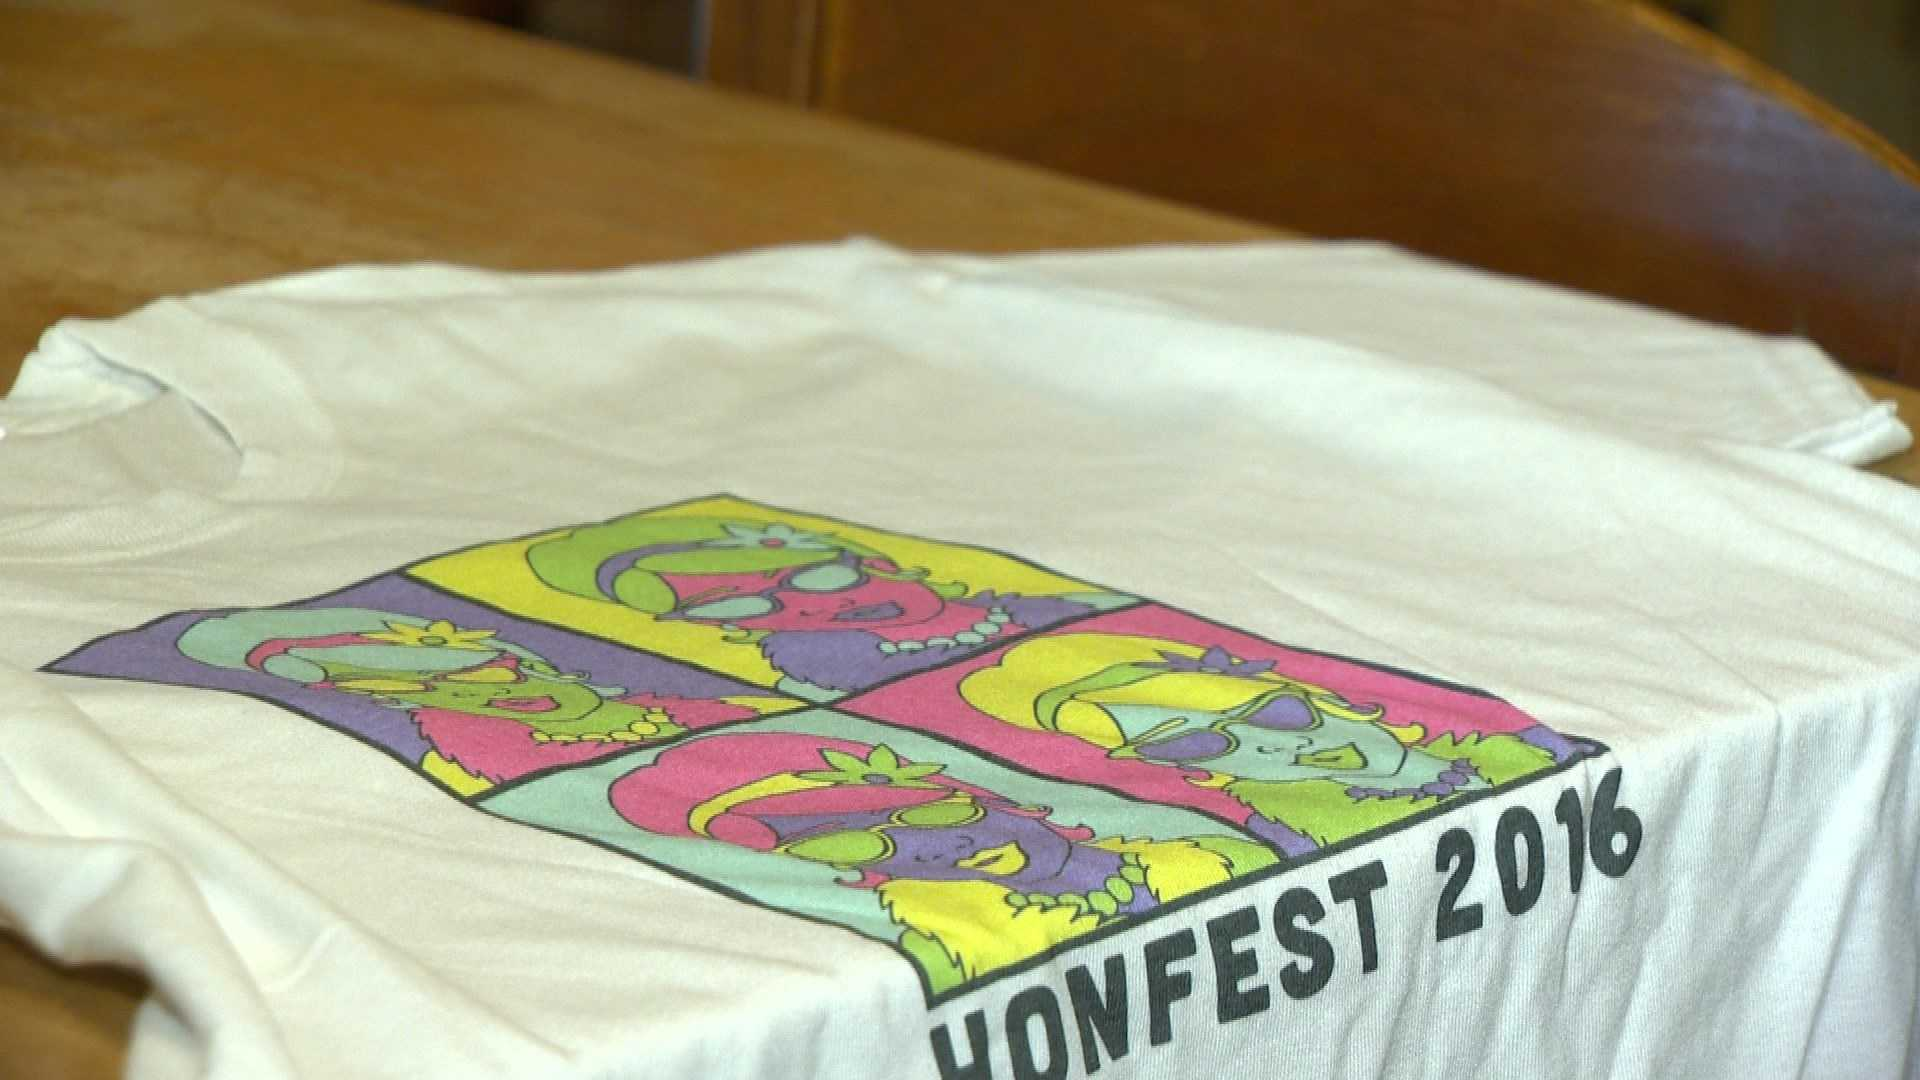 This year's official Honfest T-shirt was created by Art with a Heart.